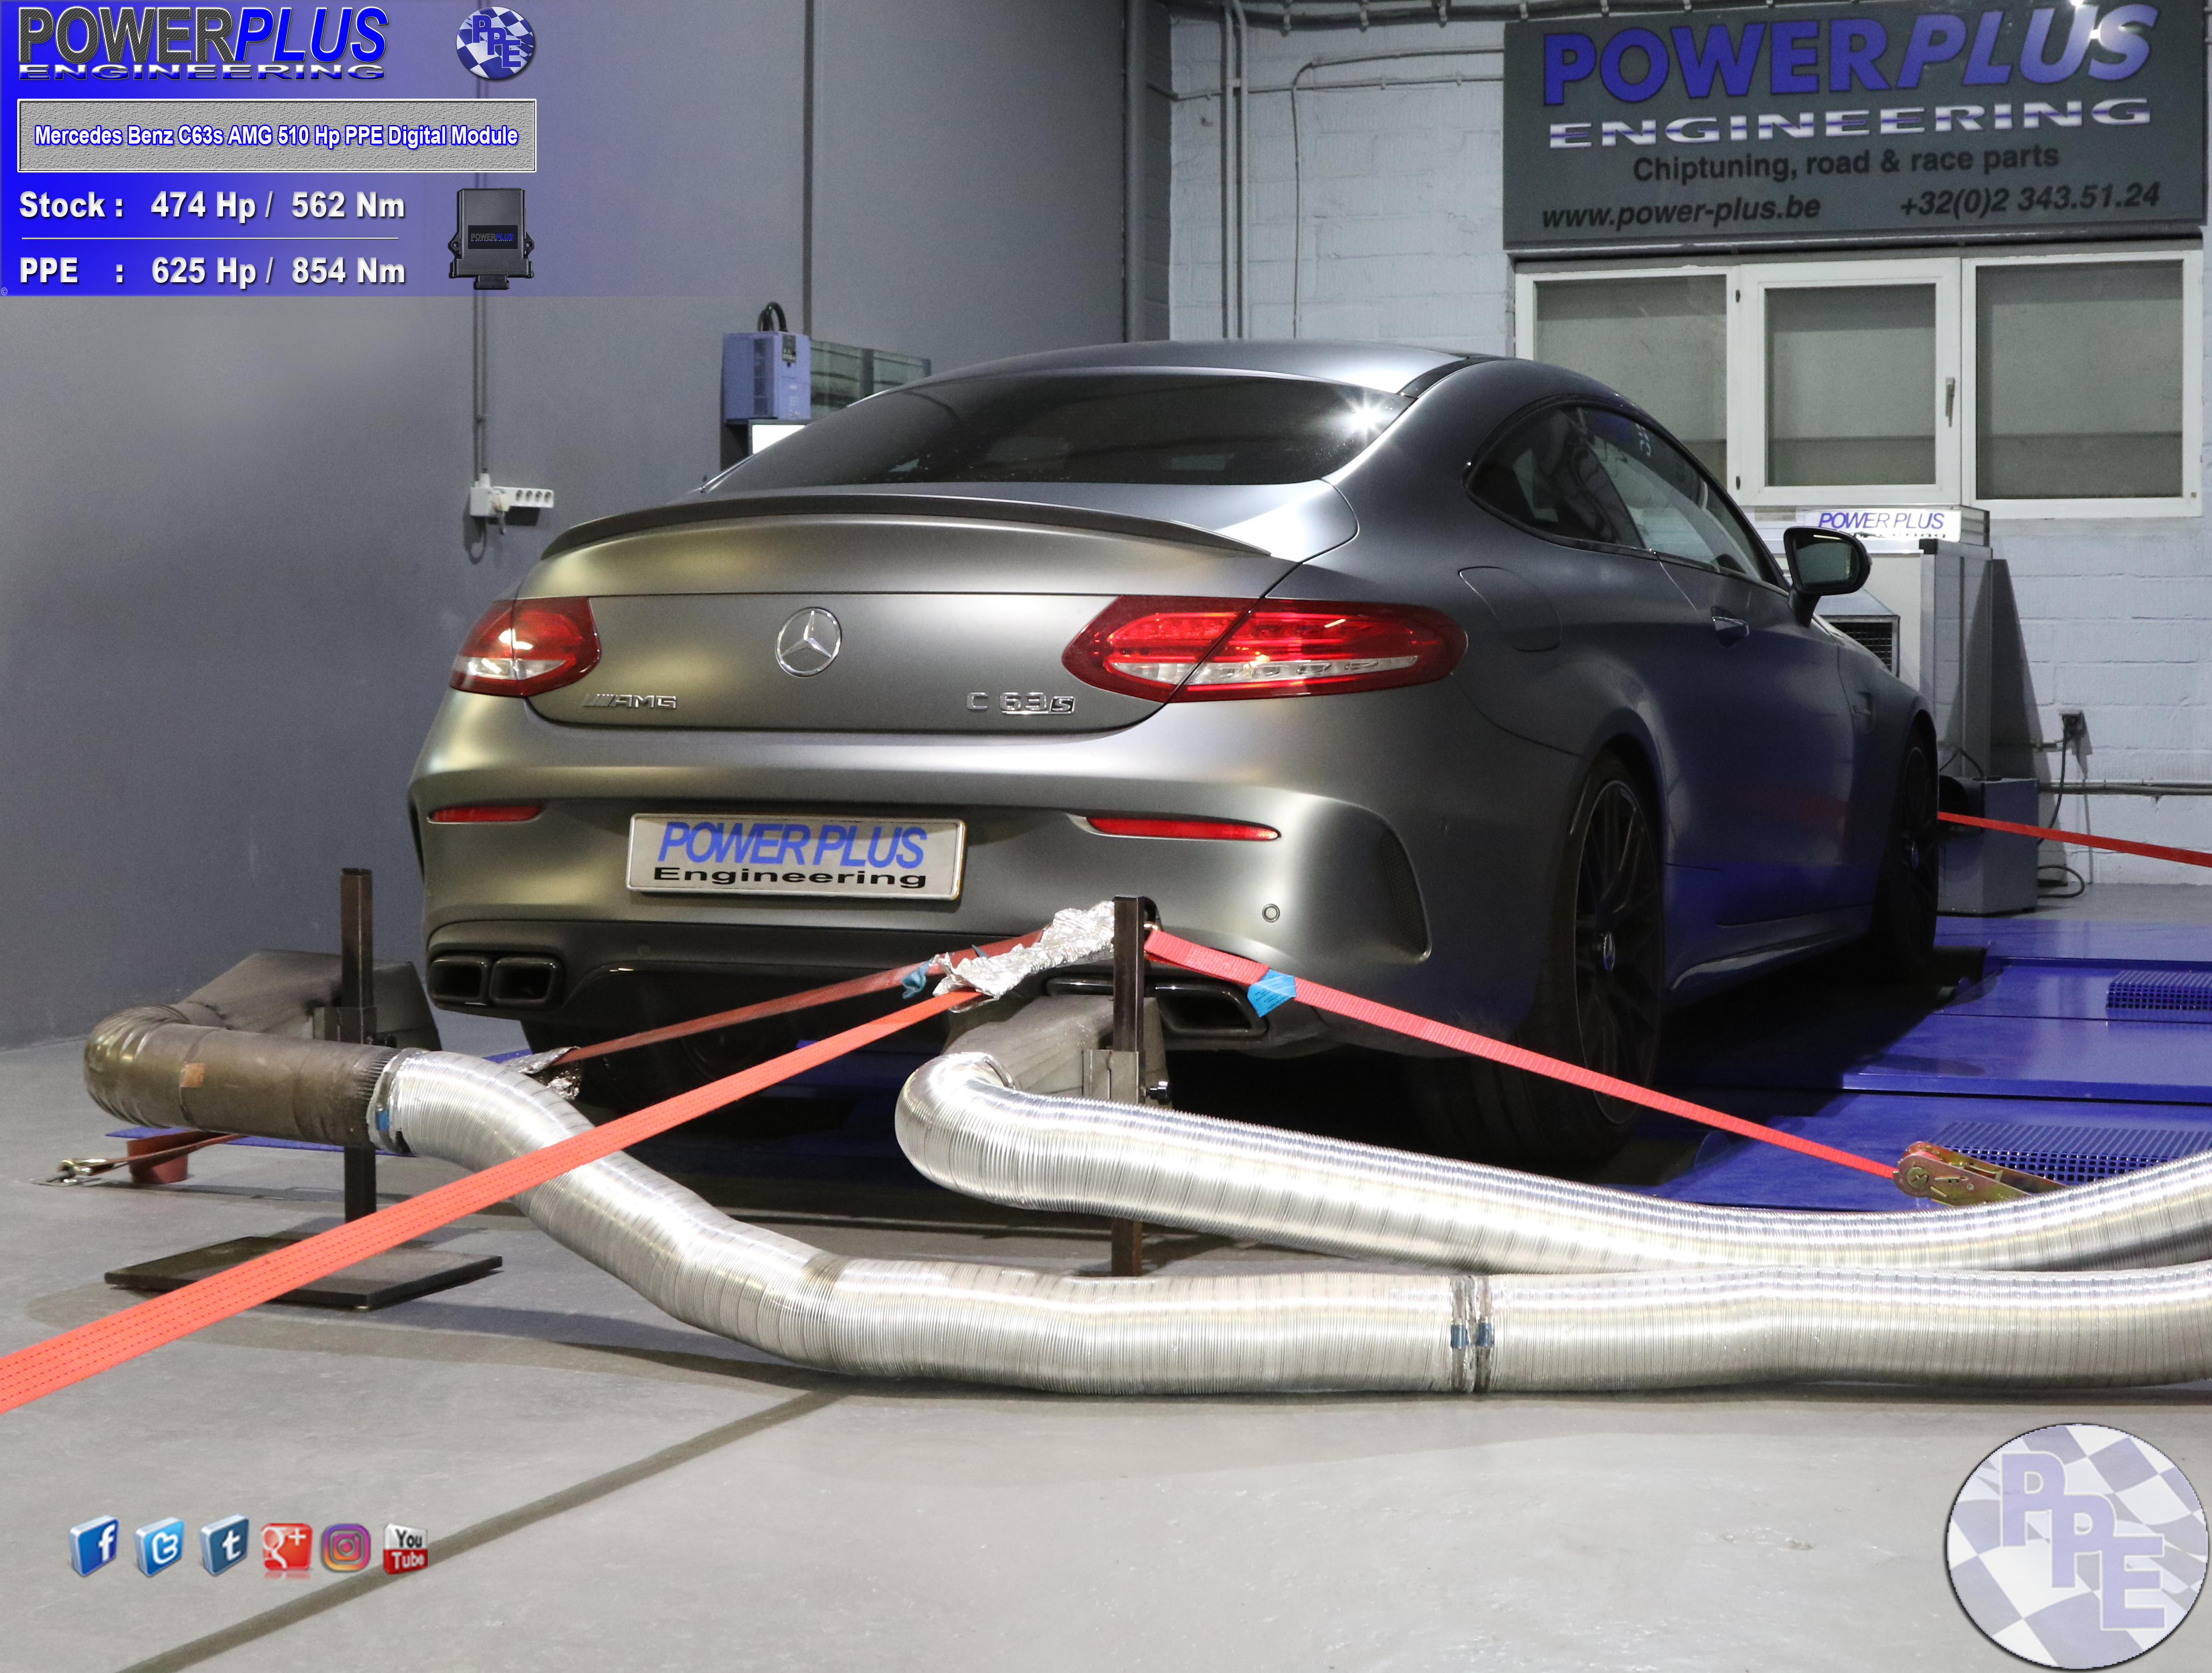 Mercedes Benz C63s AMG 510 Hp remapped with Digital Module